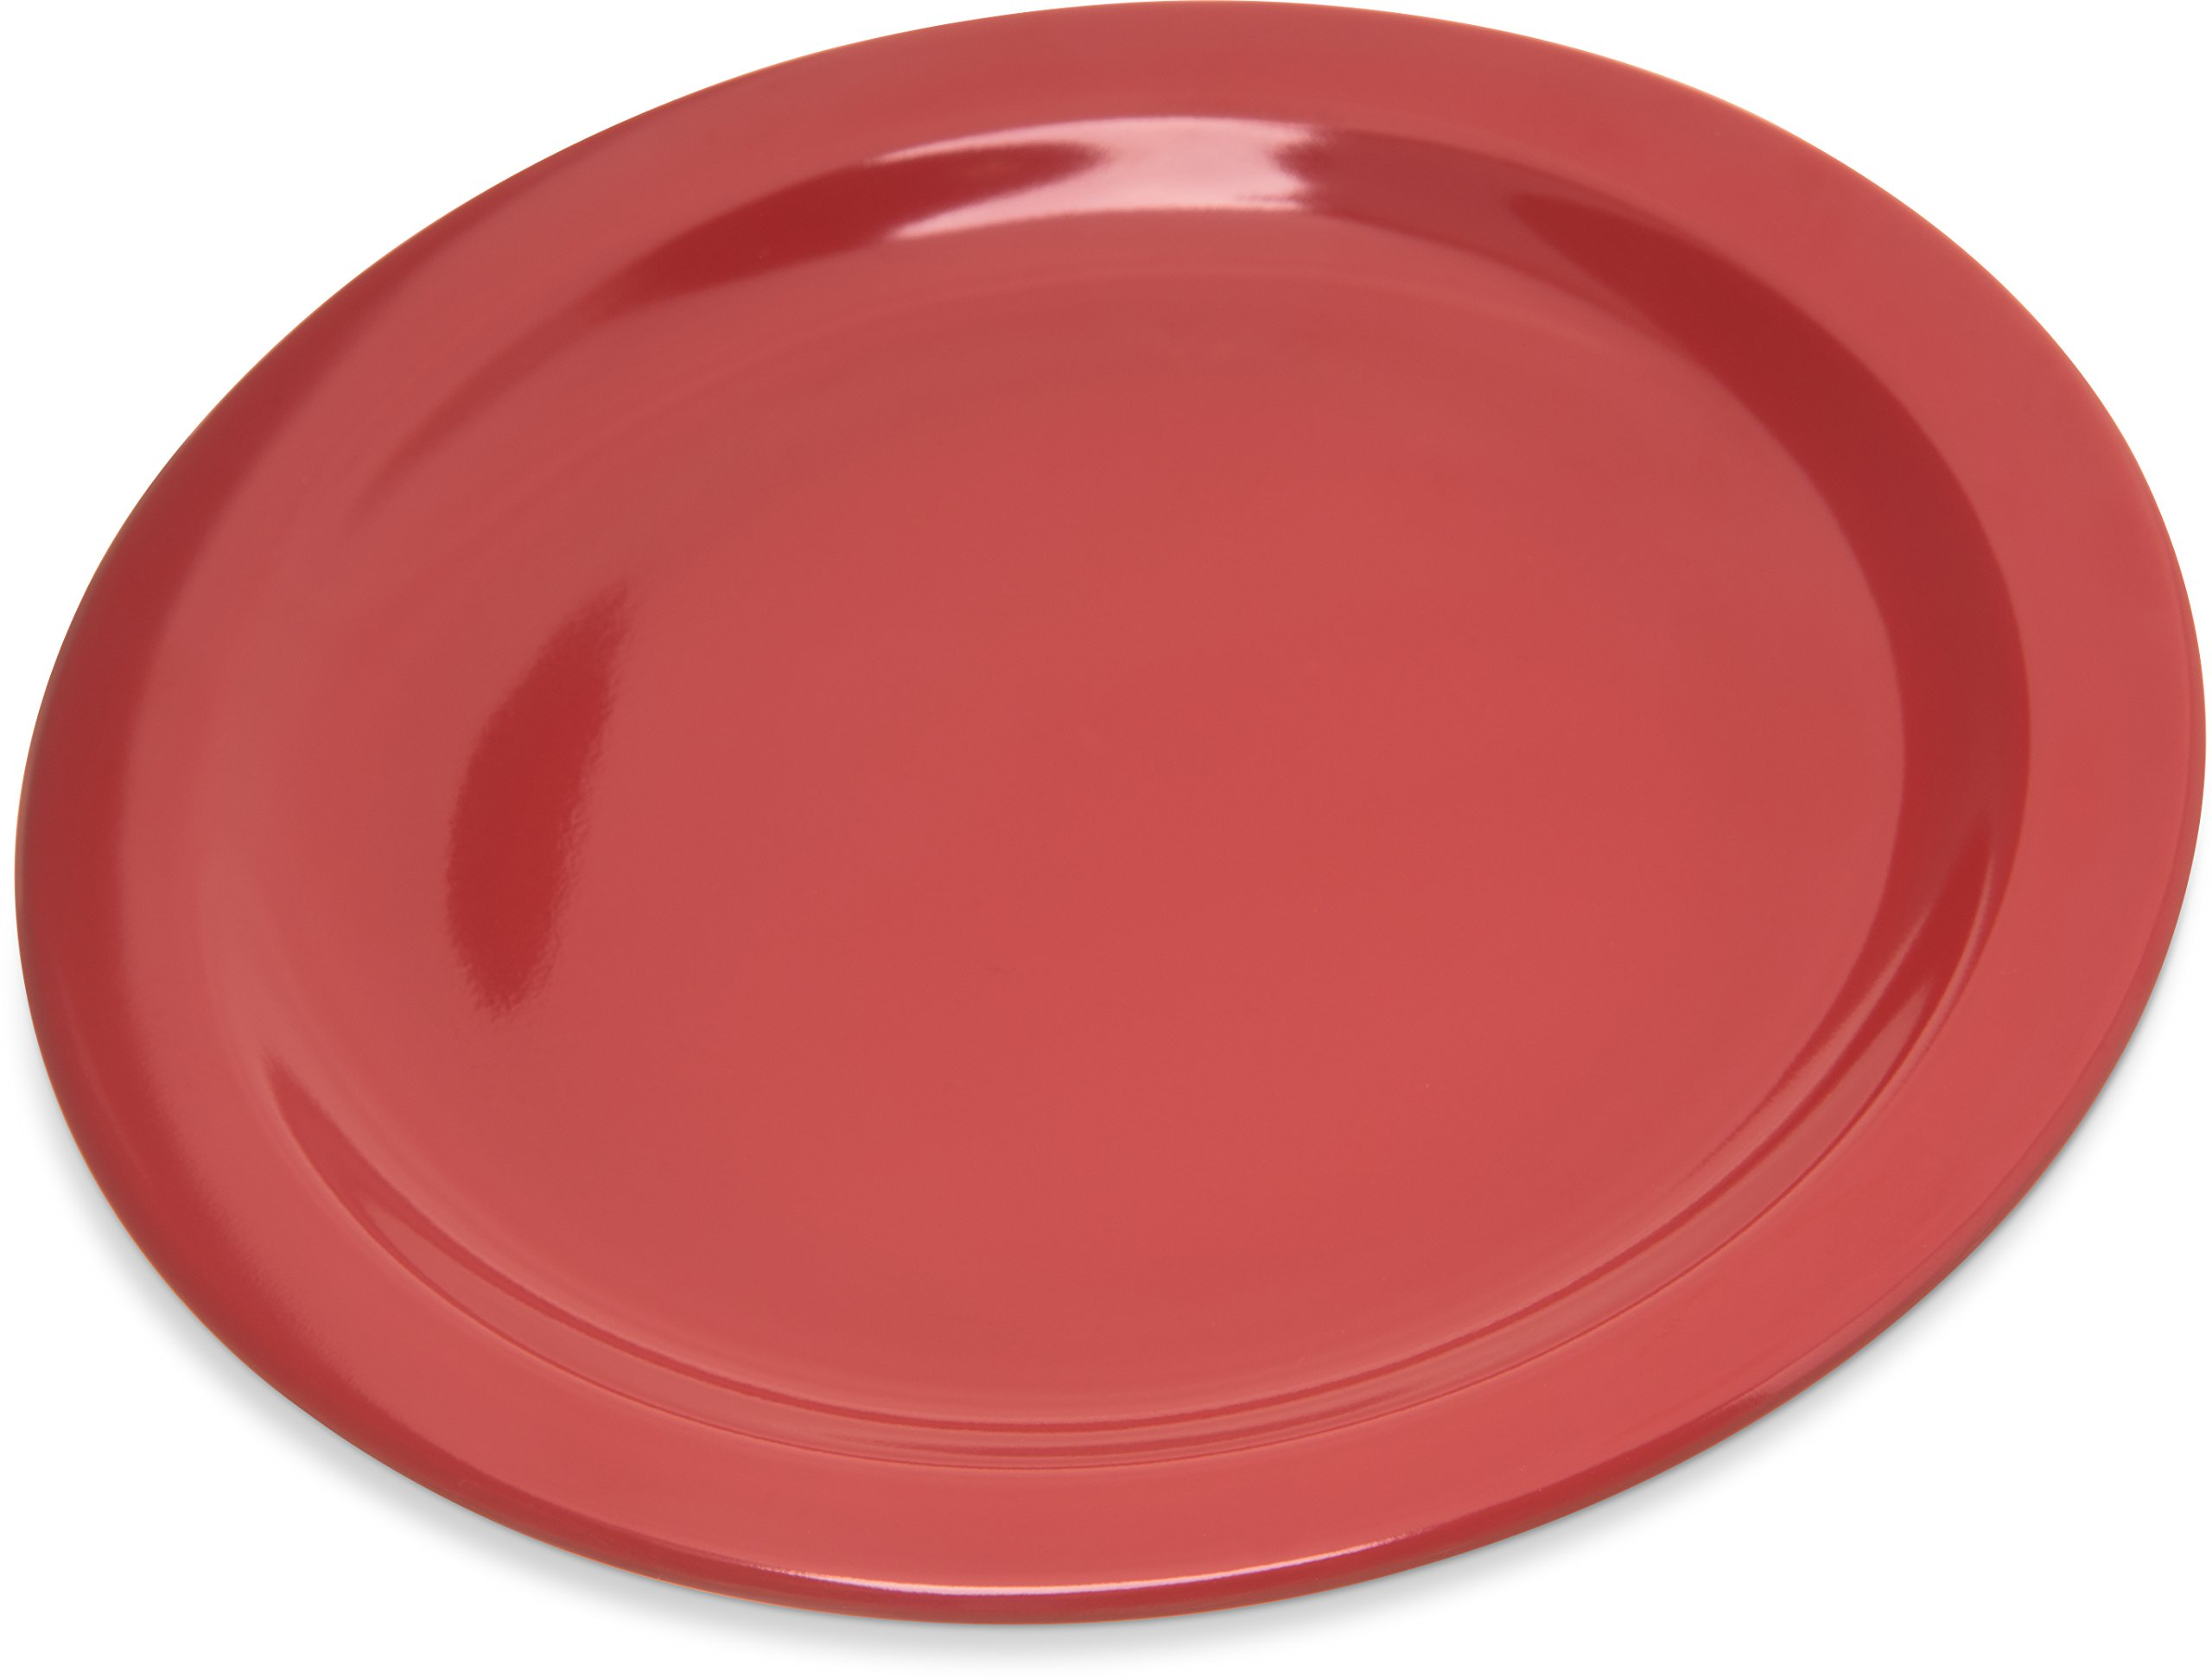 Carlisle 4350305 Dallas Ware Melamine Salad Plate, 7.19'' Diameter x 0.74'' Height, Red (Case of 48)